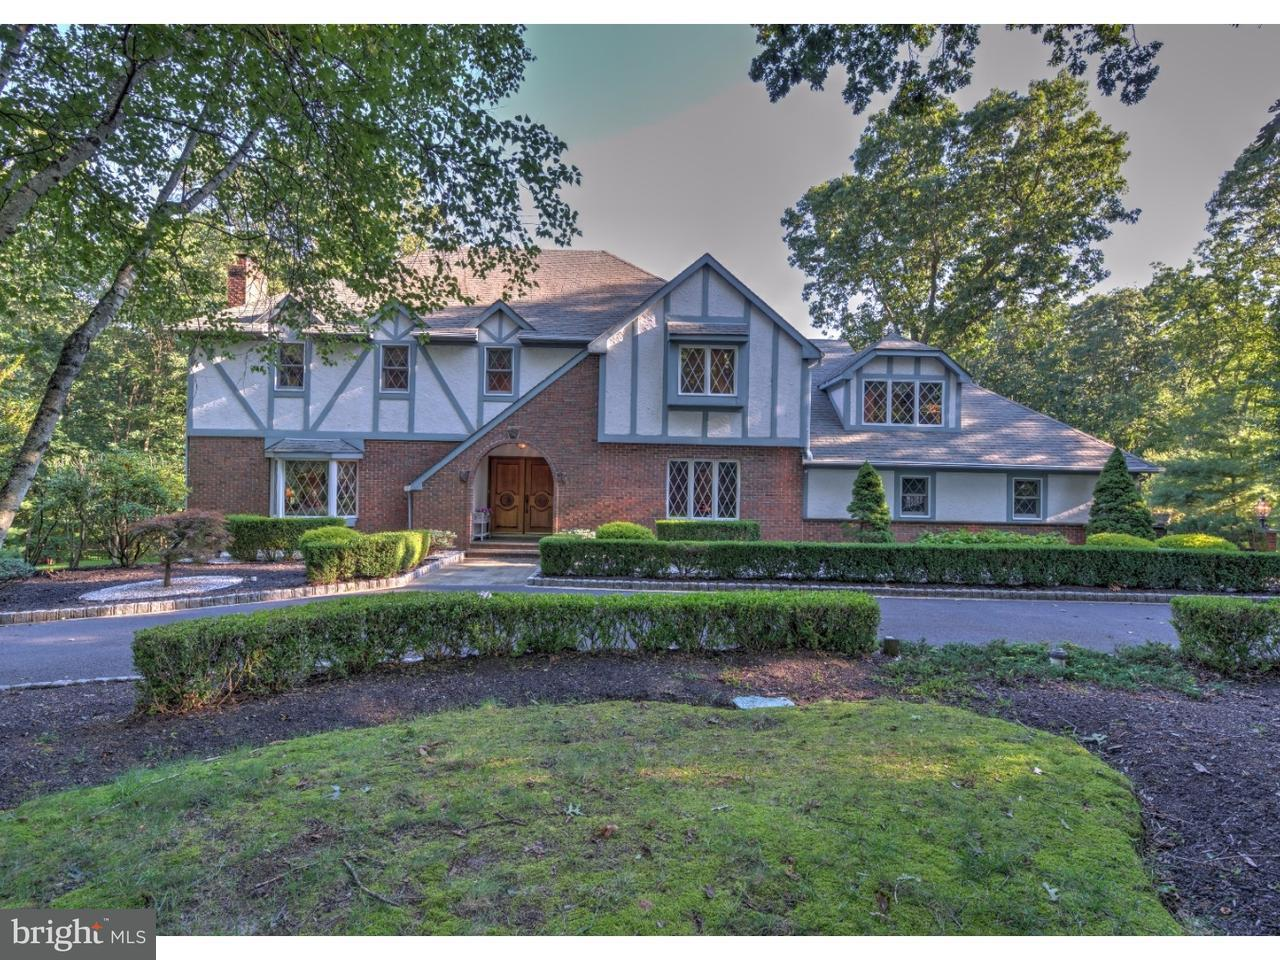 Single Family Home for Sale at 9 ALPINE Drive Perrineville, New Jersey 08535 United States